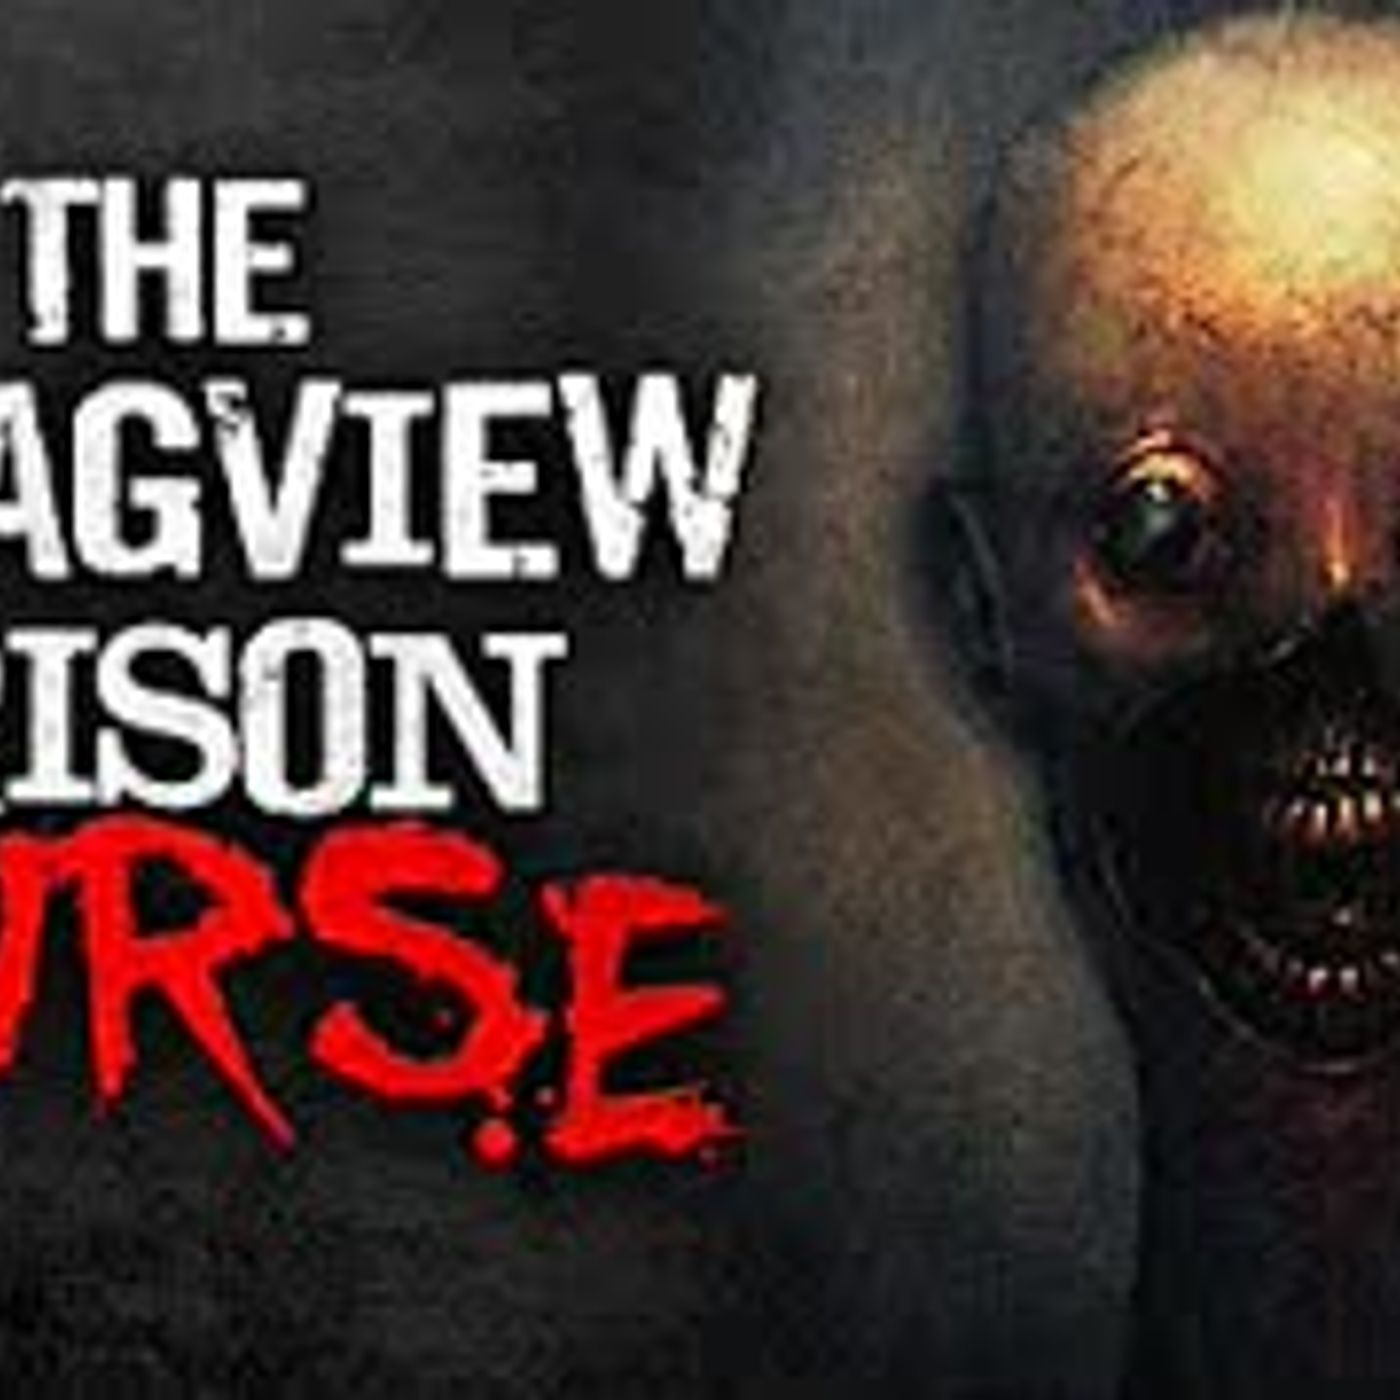 """The Stragview Prison Curse"" Creepypasta"